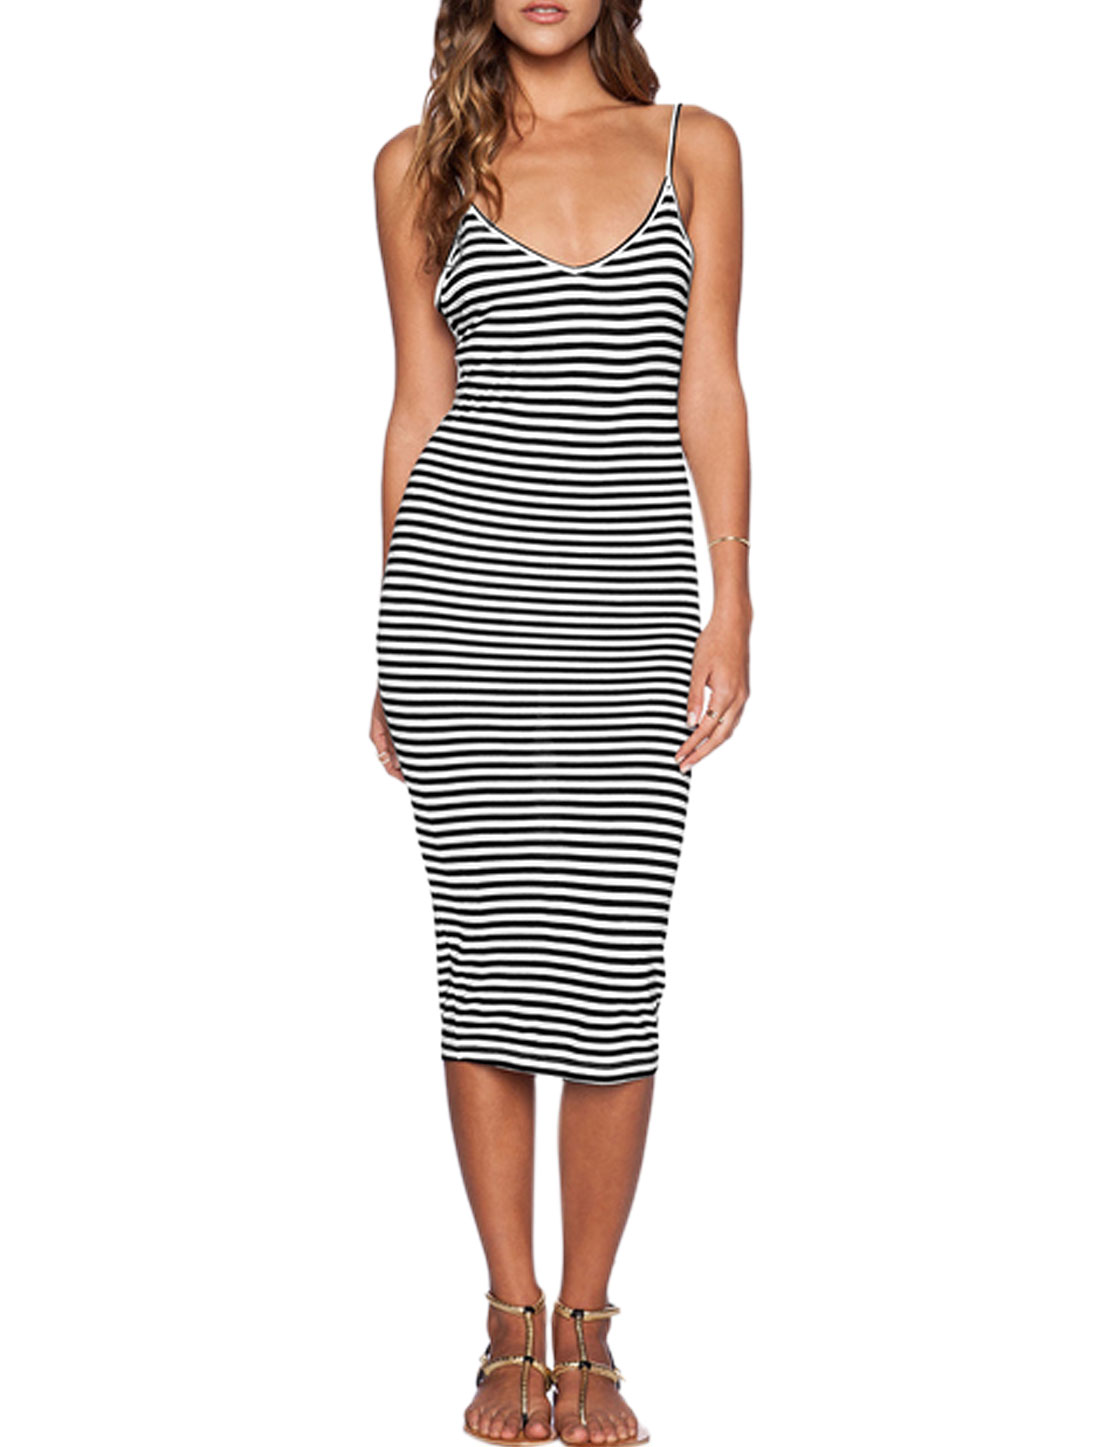 Woman Stripes Deep V Neck Spaghetti Straps Unlined Sheath Dress Black White M